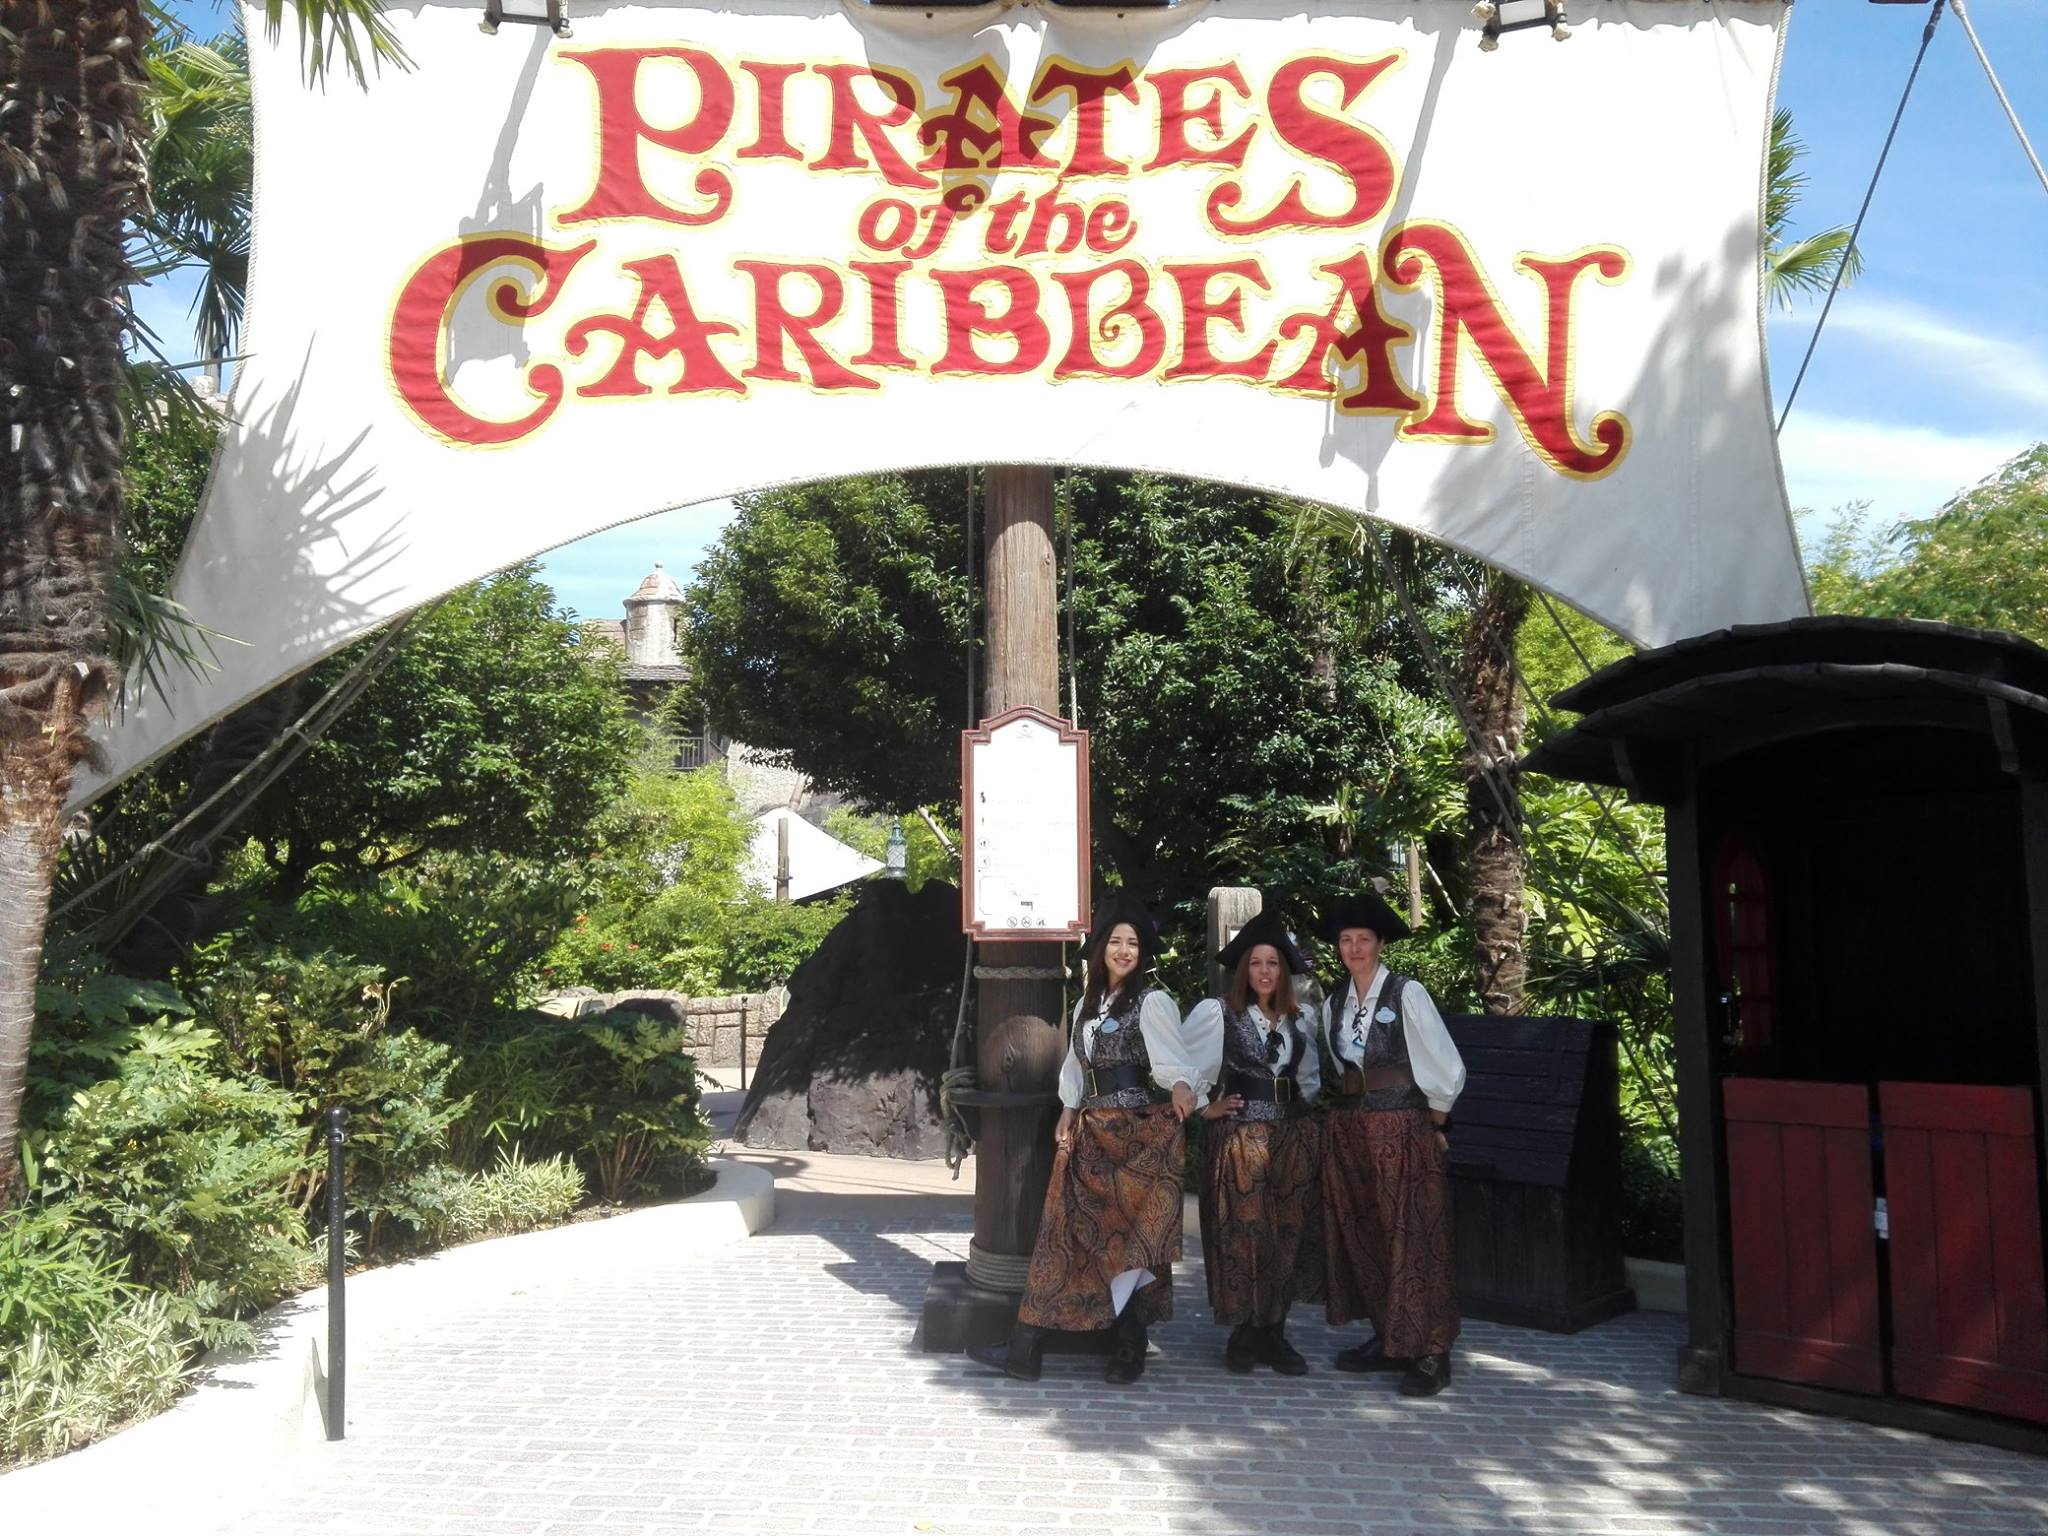 Nouvelle entrée de l'attraction Pirates des Caraïbes - Disneyland Paris